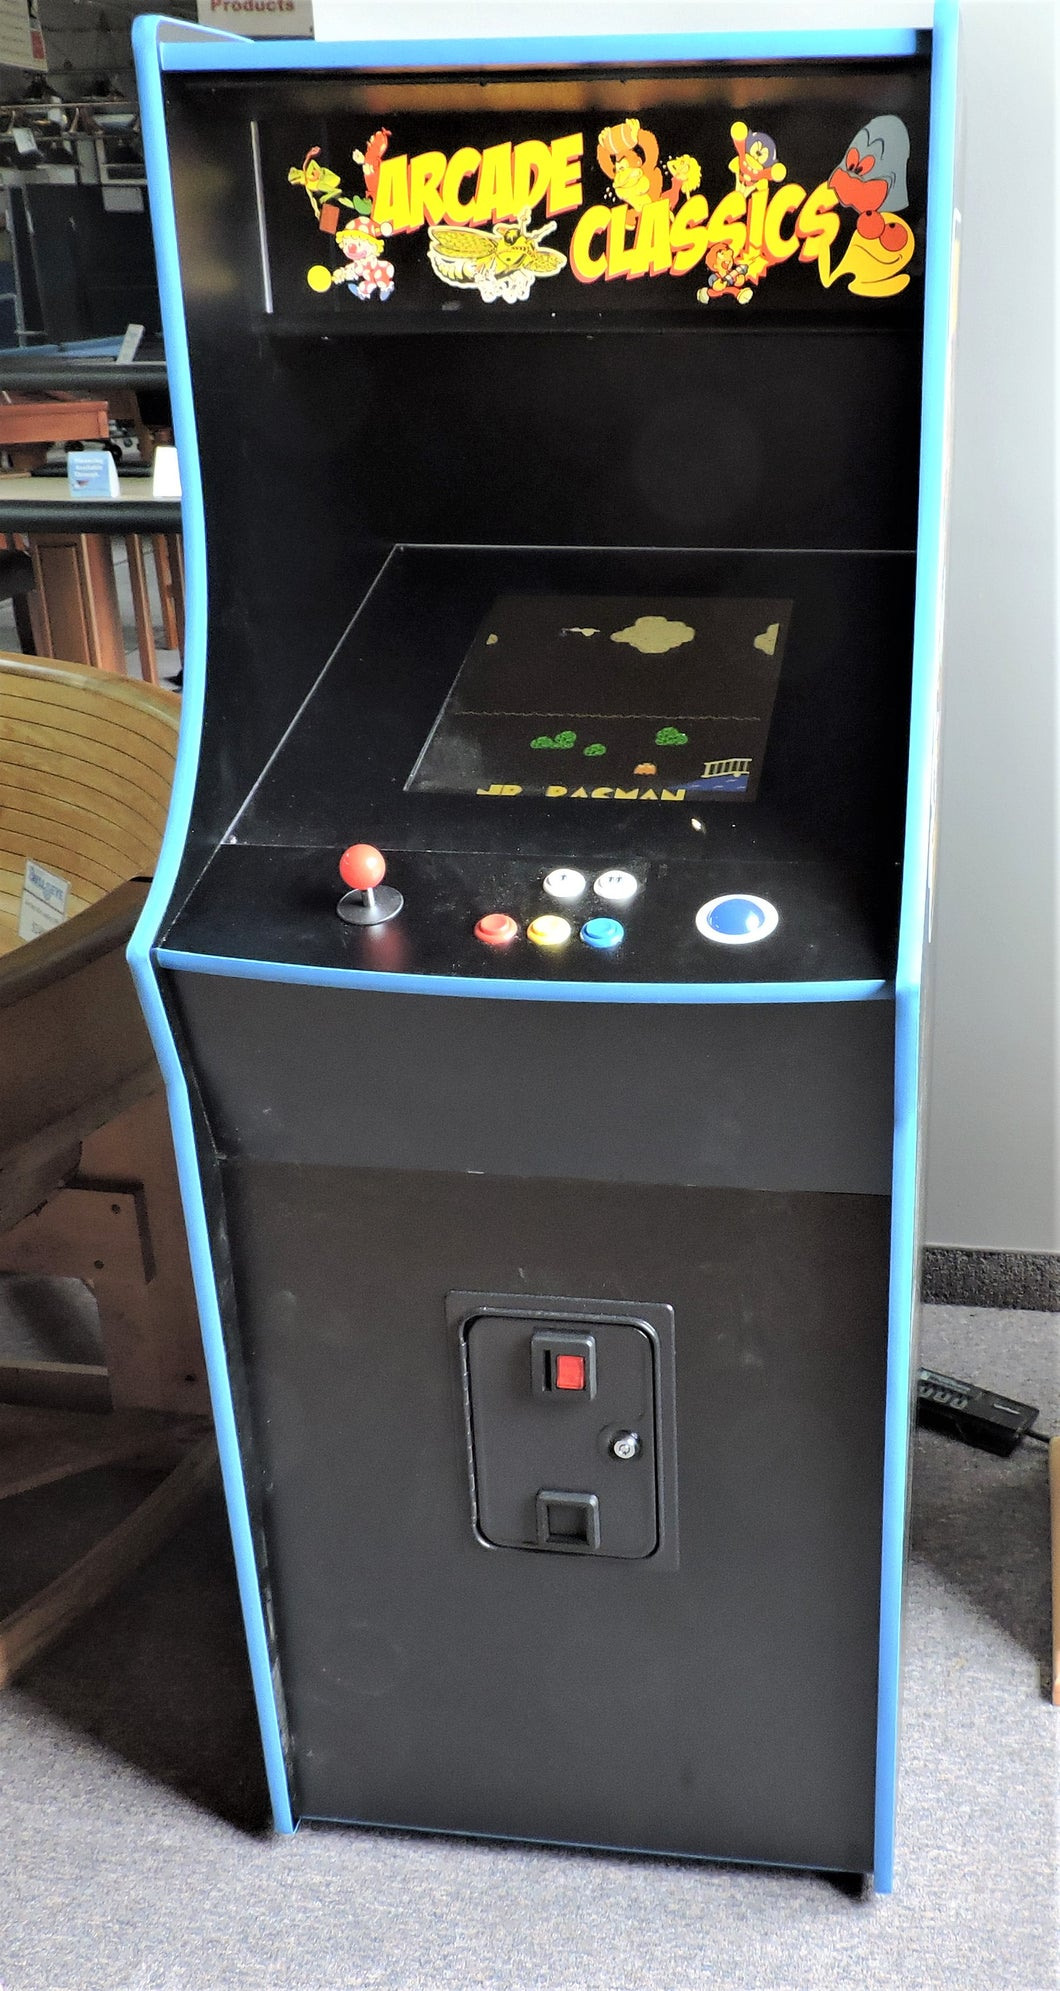 Arcade Classics stand alone video arcade game system